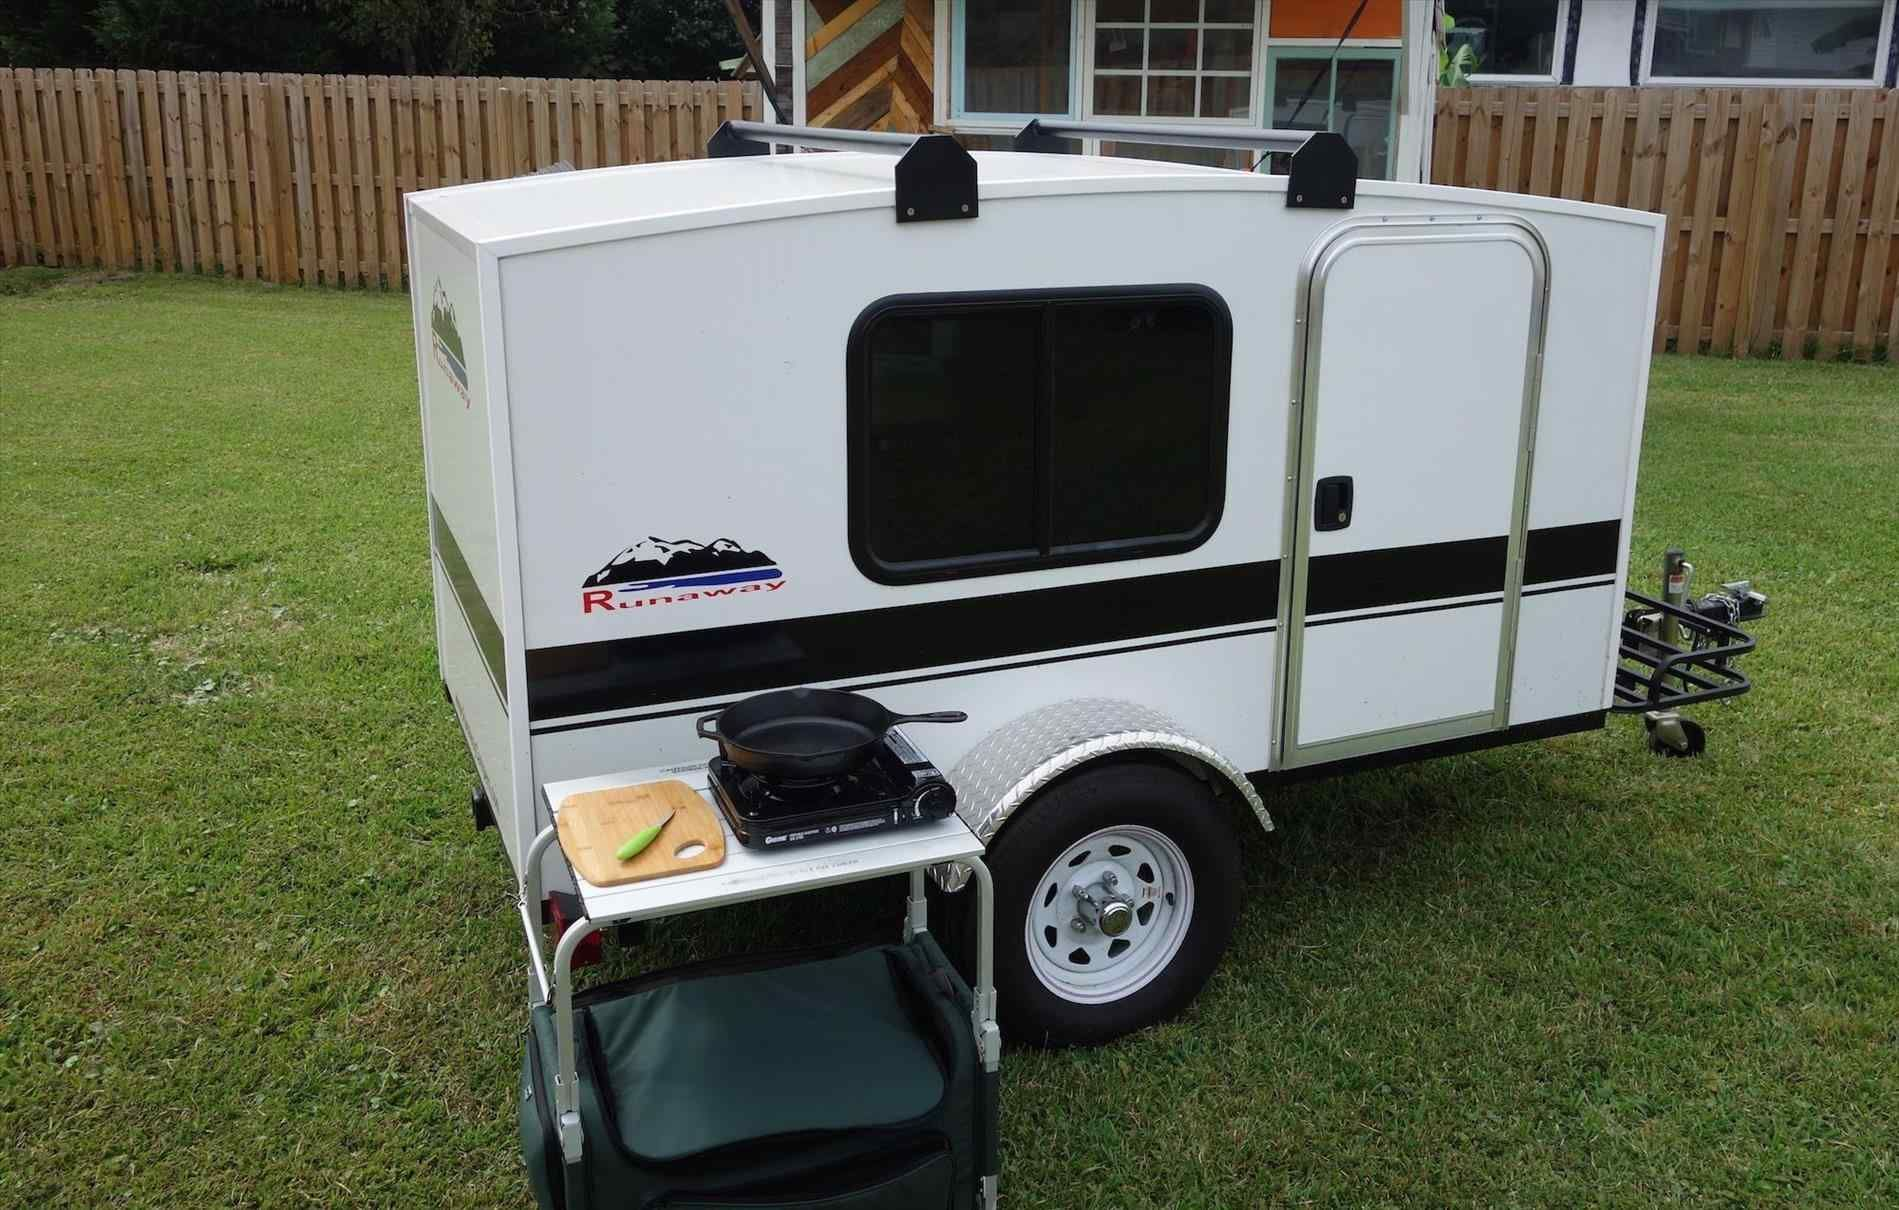 Top 20 Incredible Small Rv Trailer With Bathroom You Have ...